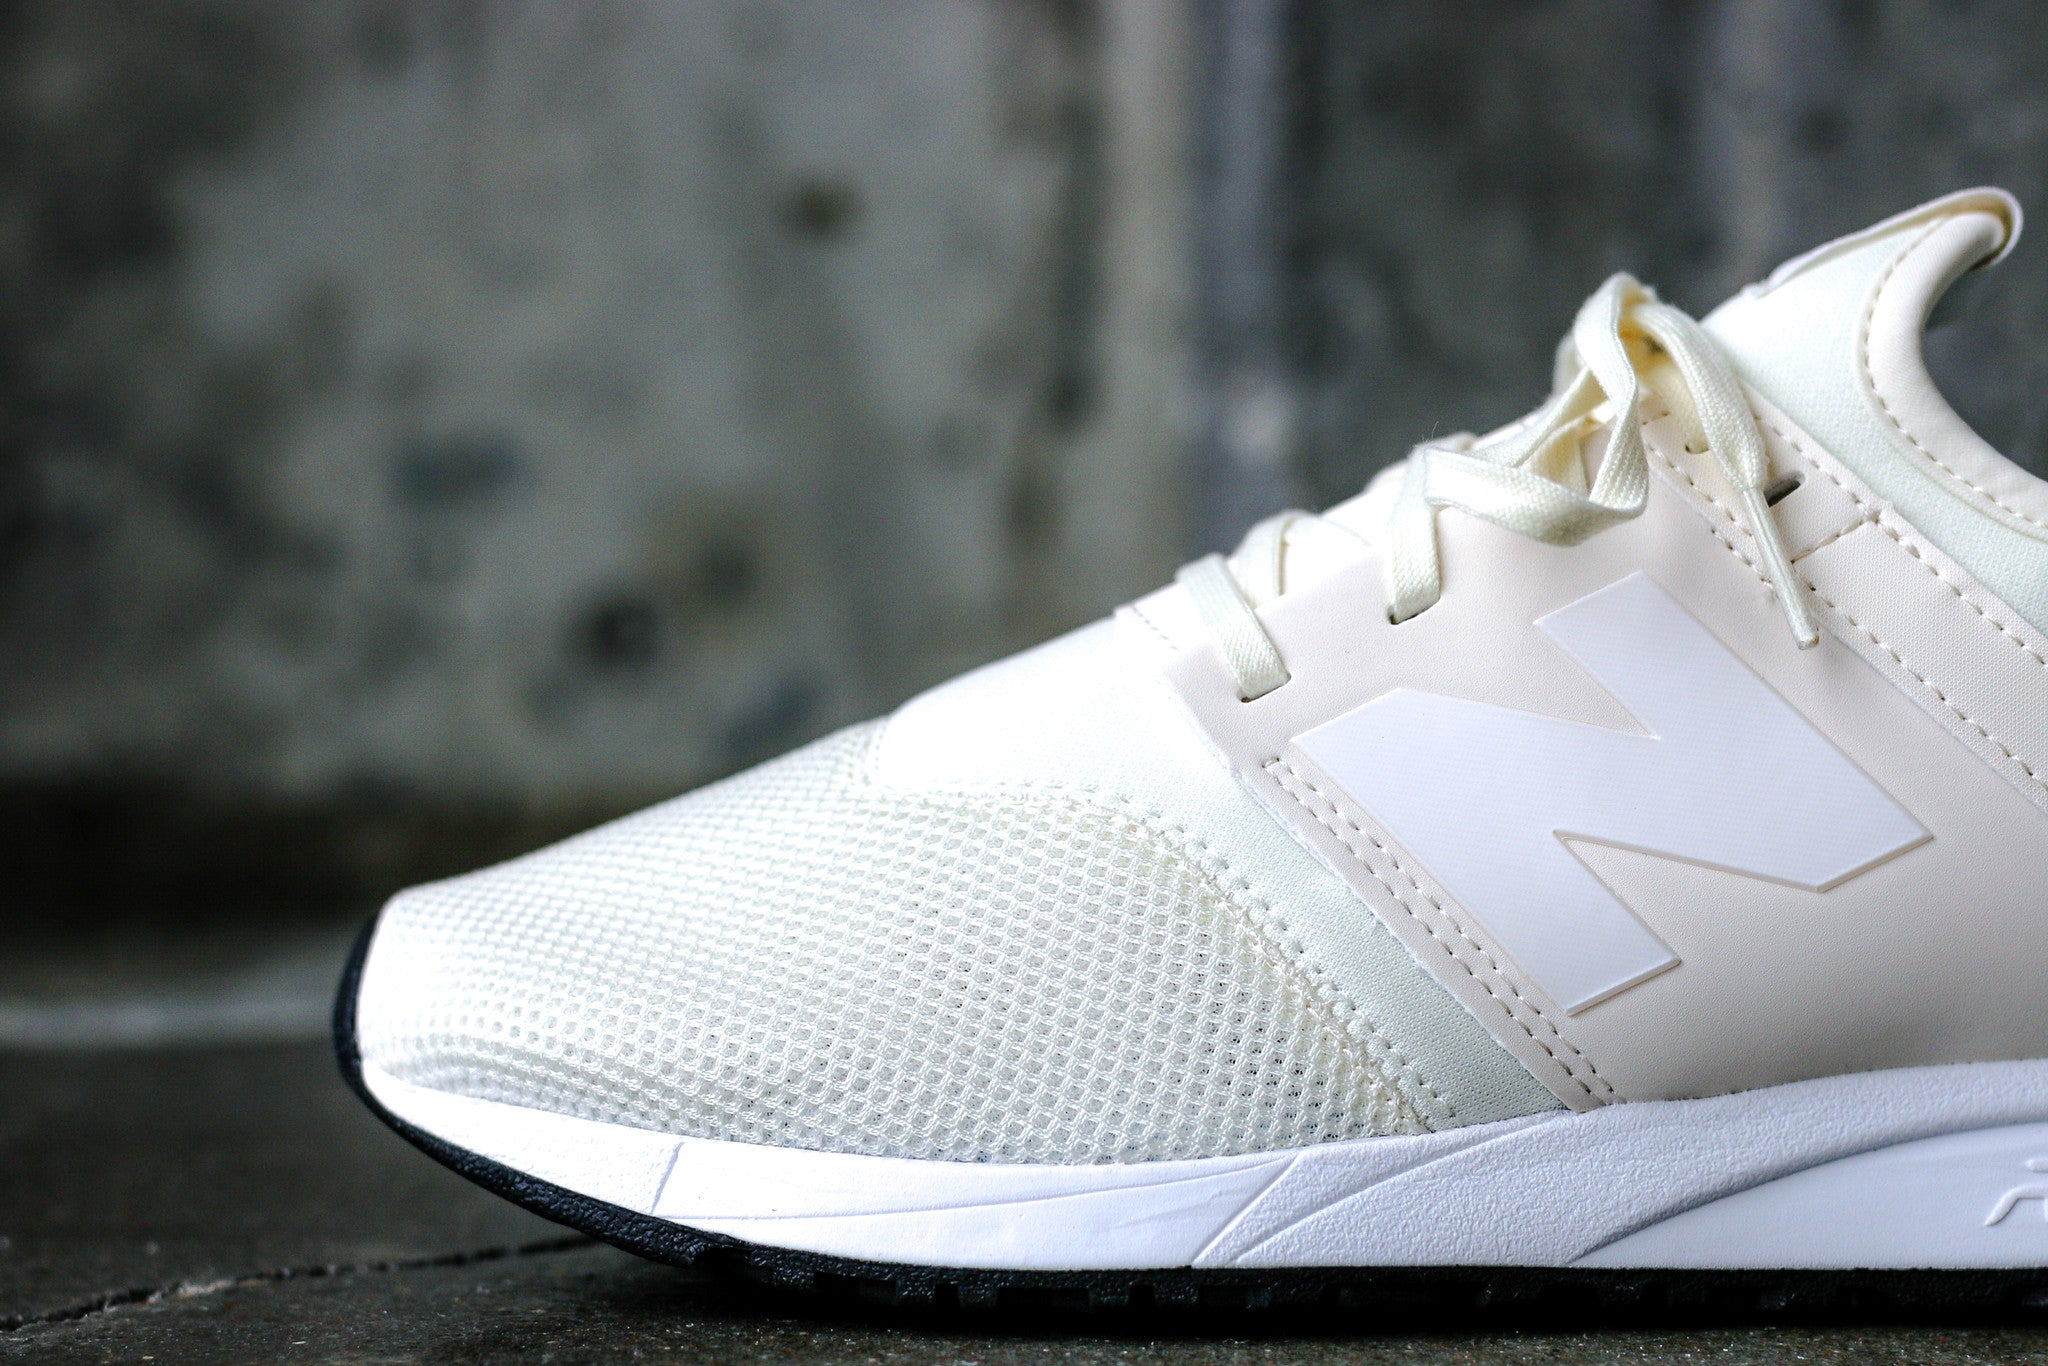 New Balance 247 Classic Pack men's size 9 in Cream